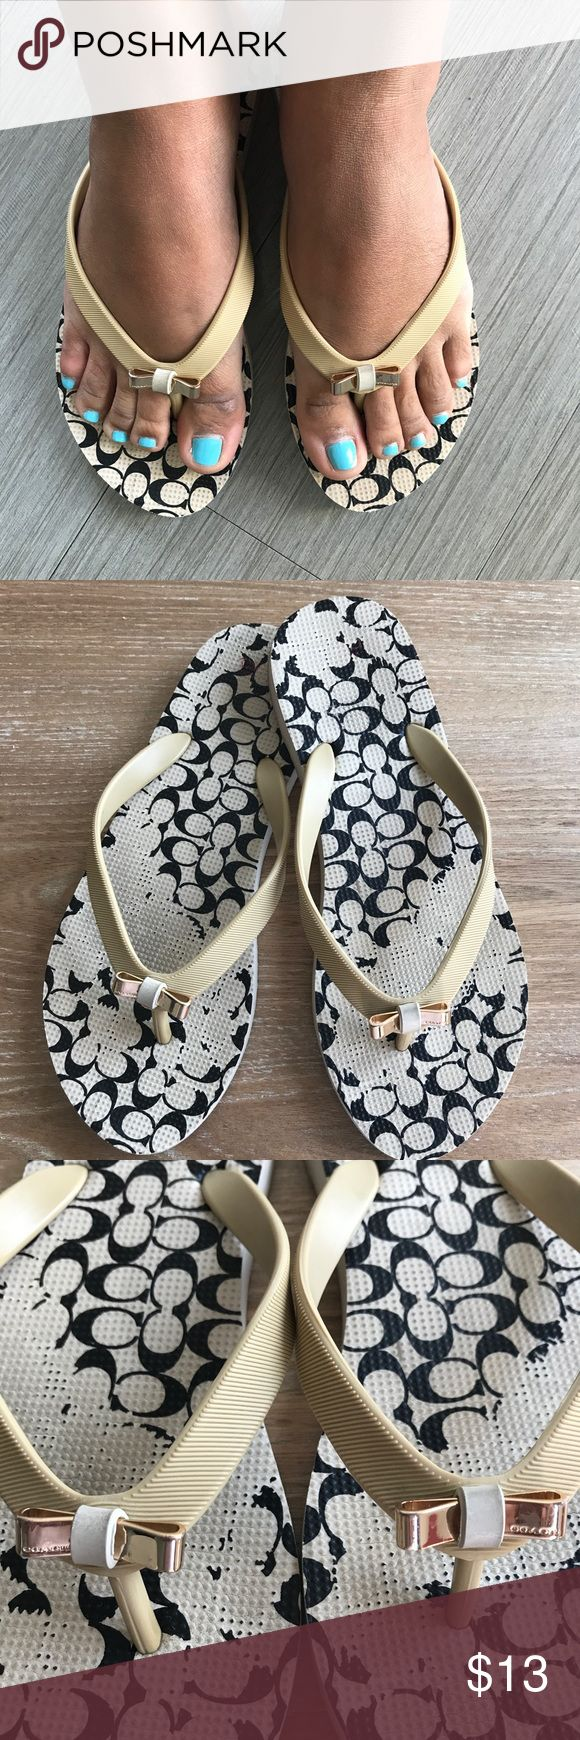 Coach Flip Flops Beige 💗Condition: Used. Please note pictures for flaws. They have a lot of life. Selling due to moving  💗Smoke free home/Pet hair free 💗No trades, No returns. No modeling  💗 I don't drop prices, make me offers!  💗Shipping next day. Beautiful package! 💗ALL ITEMS ARE OWNED BY ME. NOT FROM THRIFT STORES 💗All transactions video recorded to ensure quality.  💗Ask all questions before buying Coach Shoes Sandals